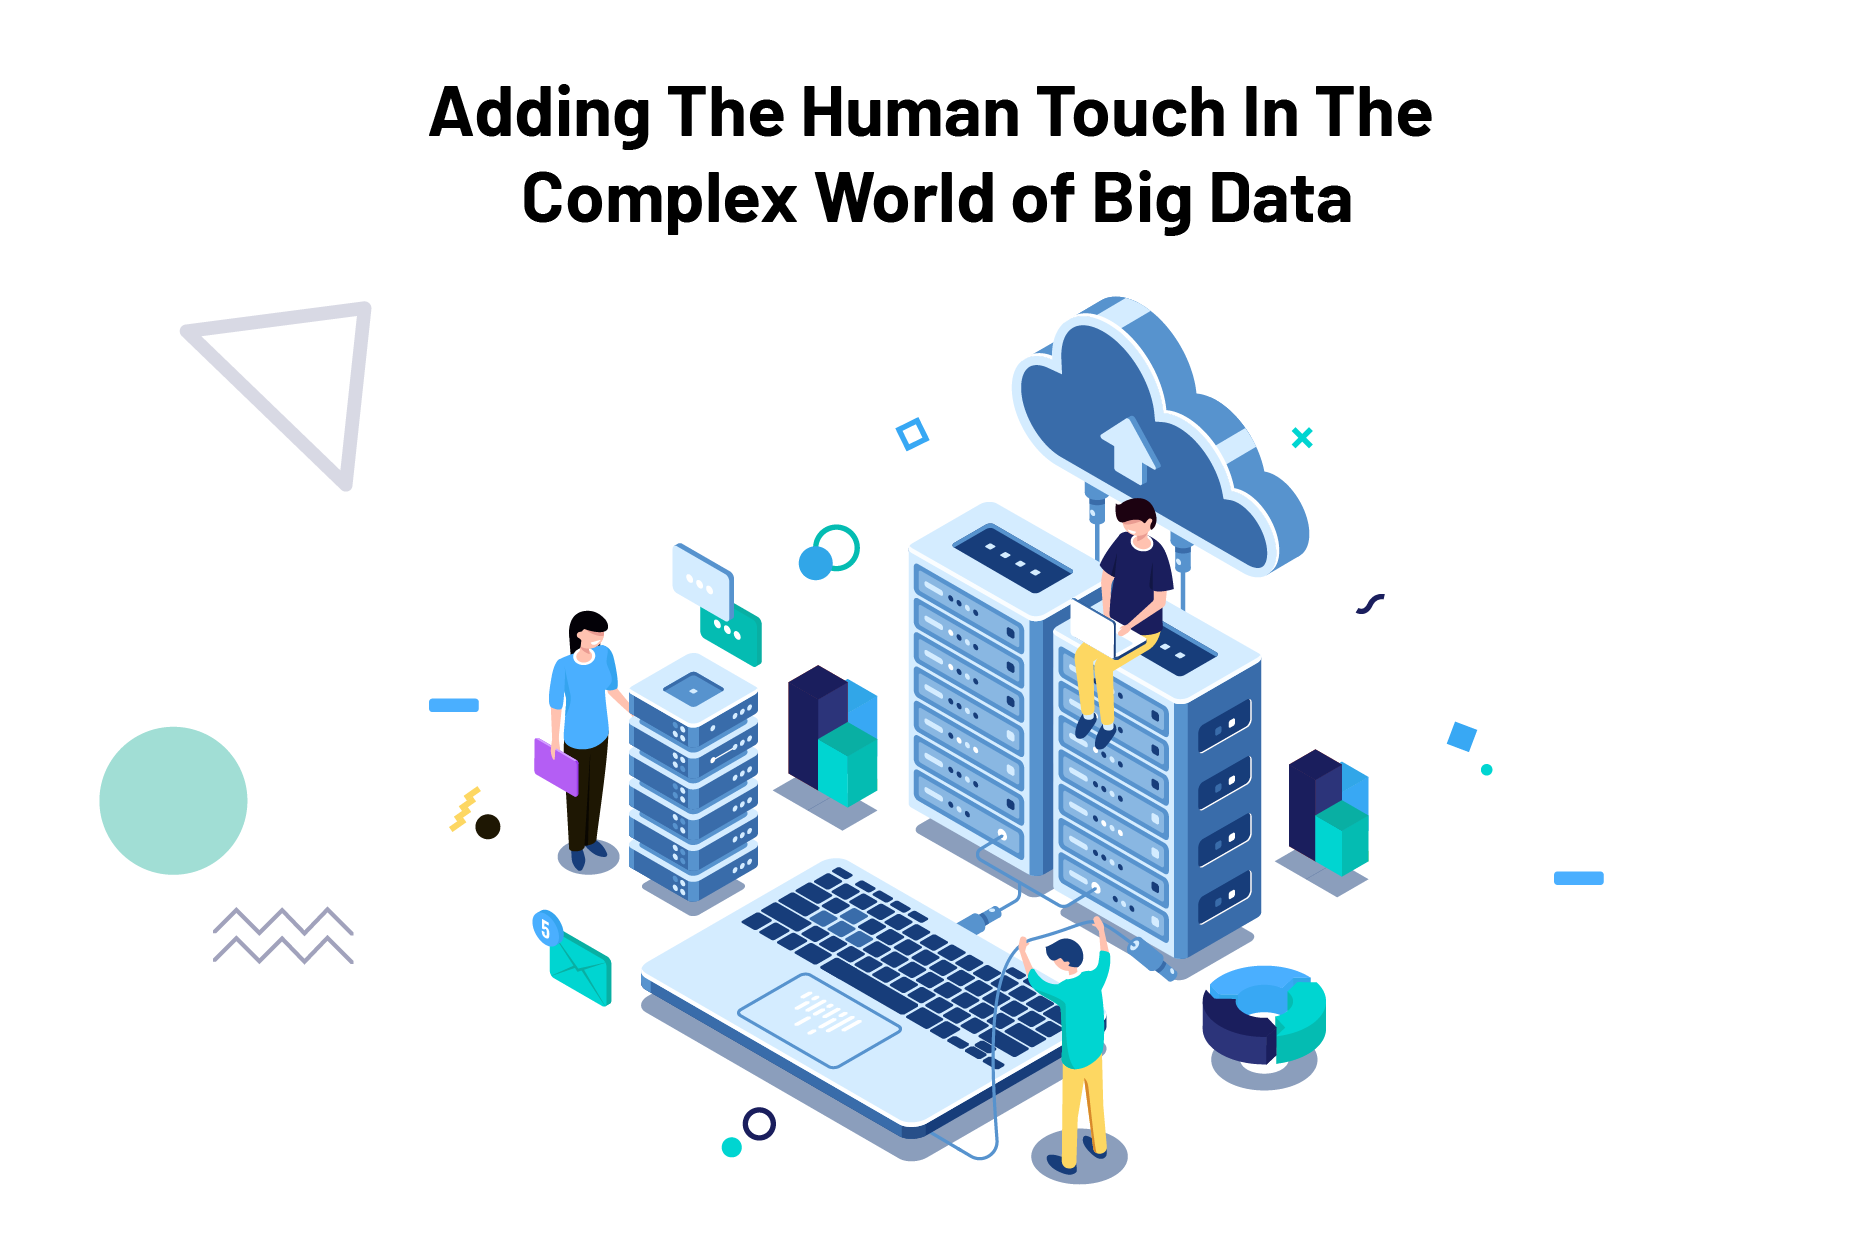 The Human Touch In The Complex World of Big Data-09